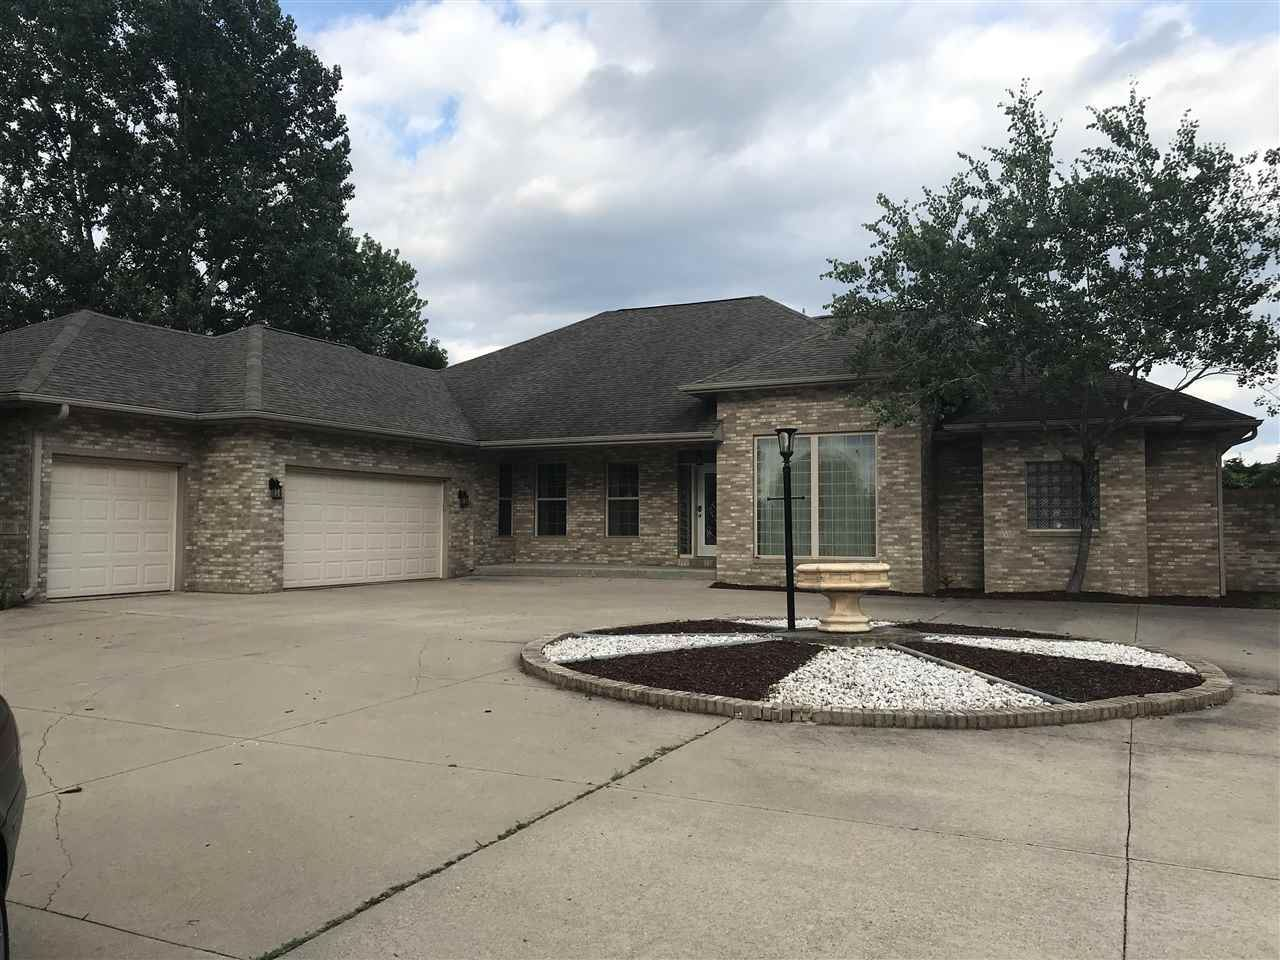 1805 Red Tail Dr, Verona, WI 53593 - #: 1914277